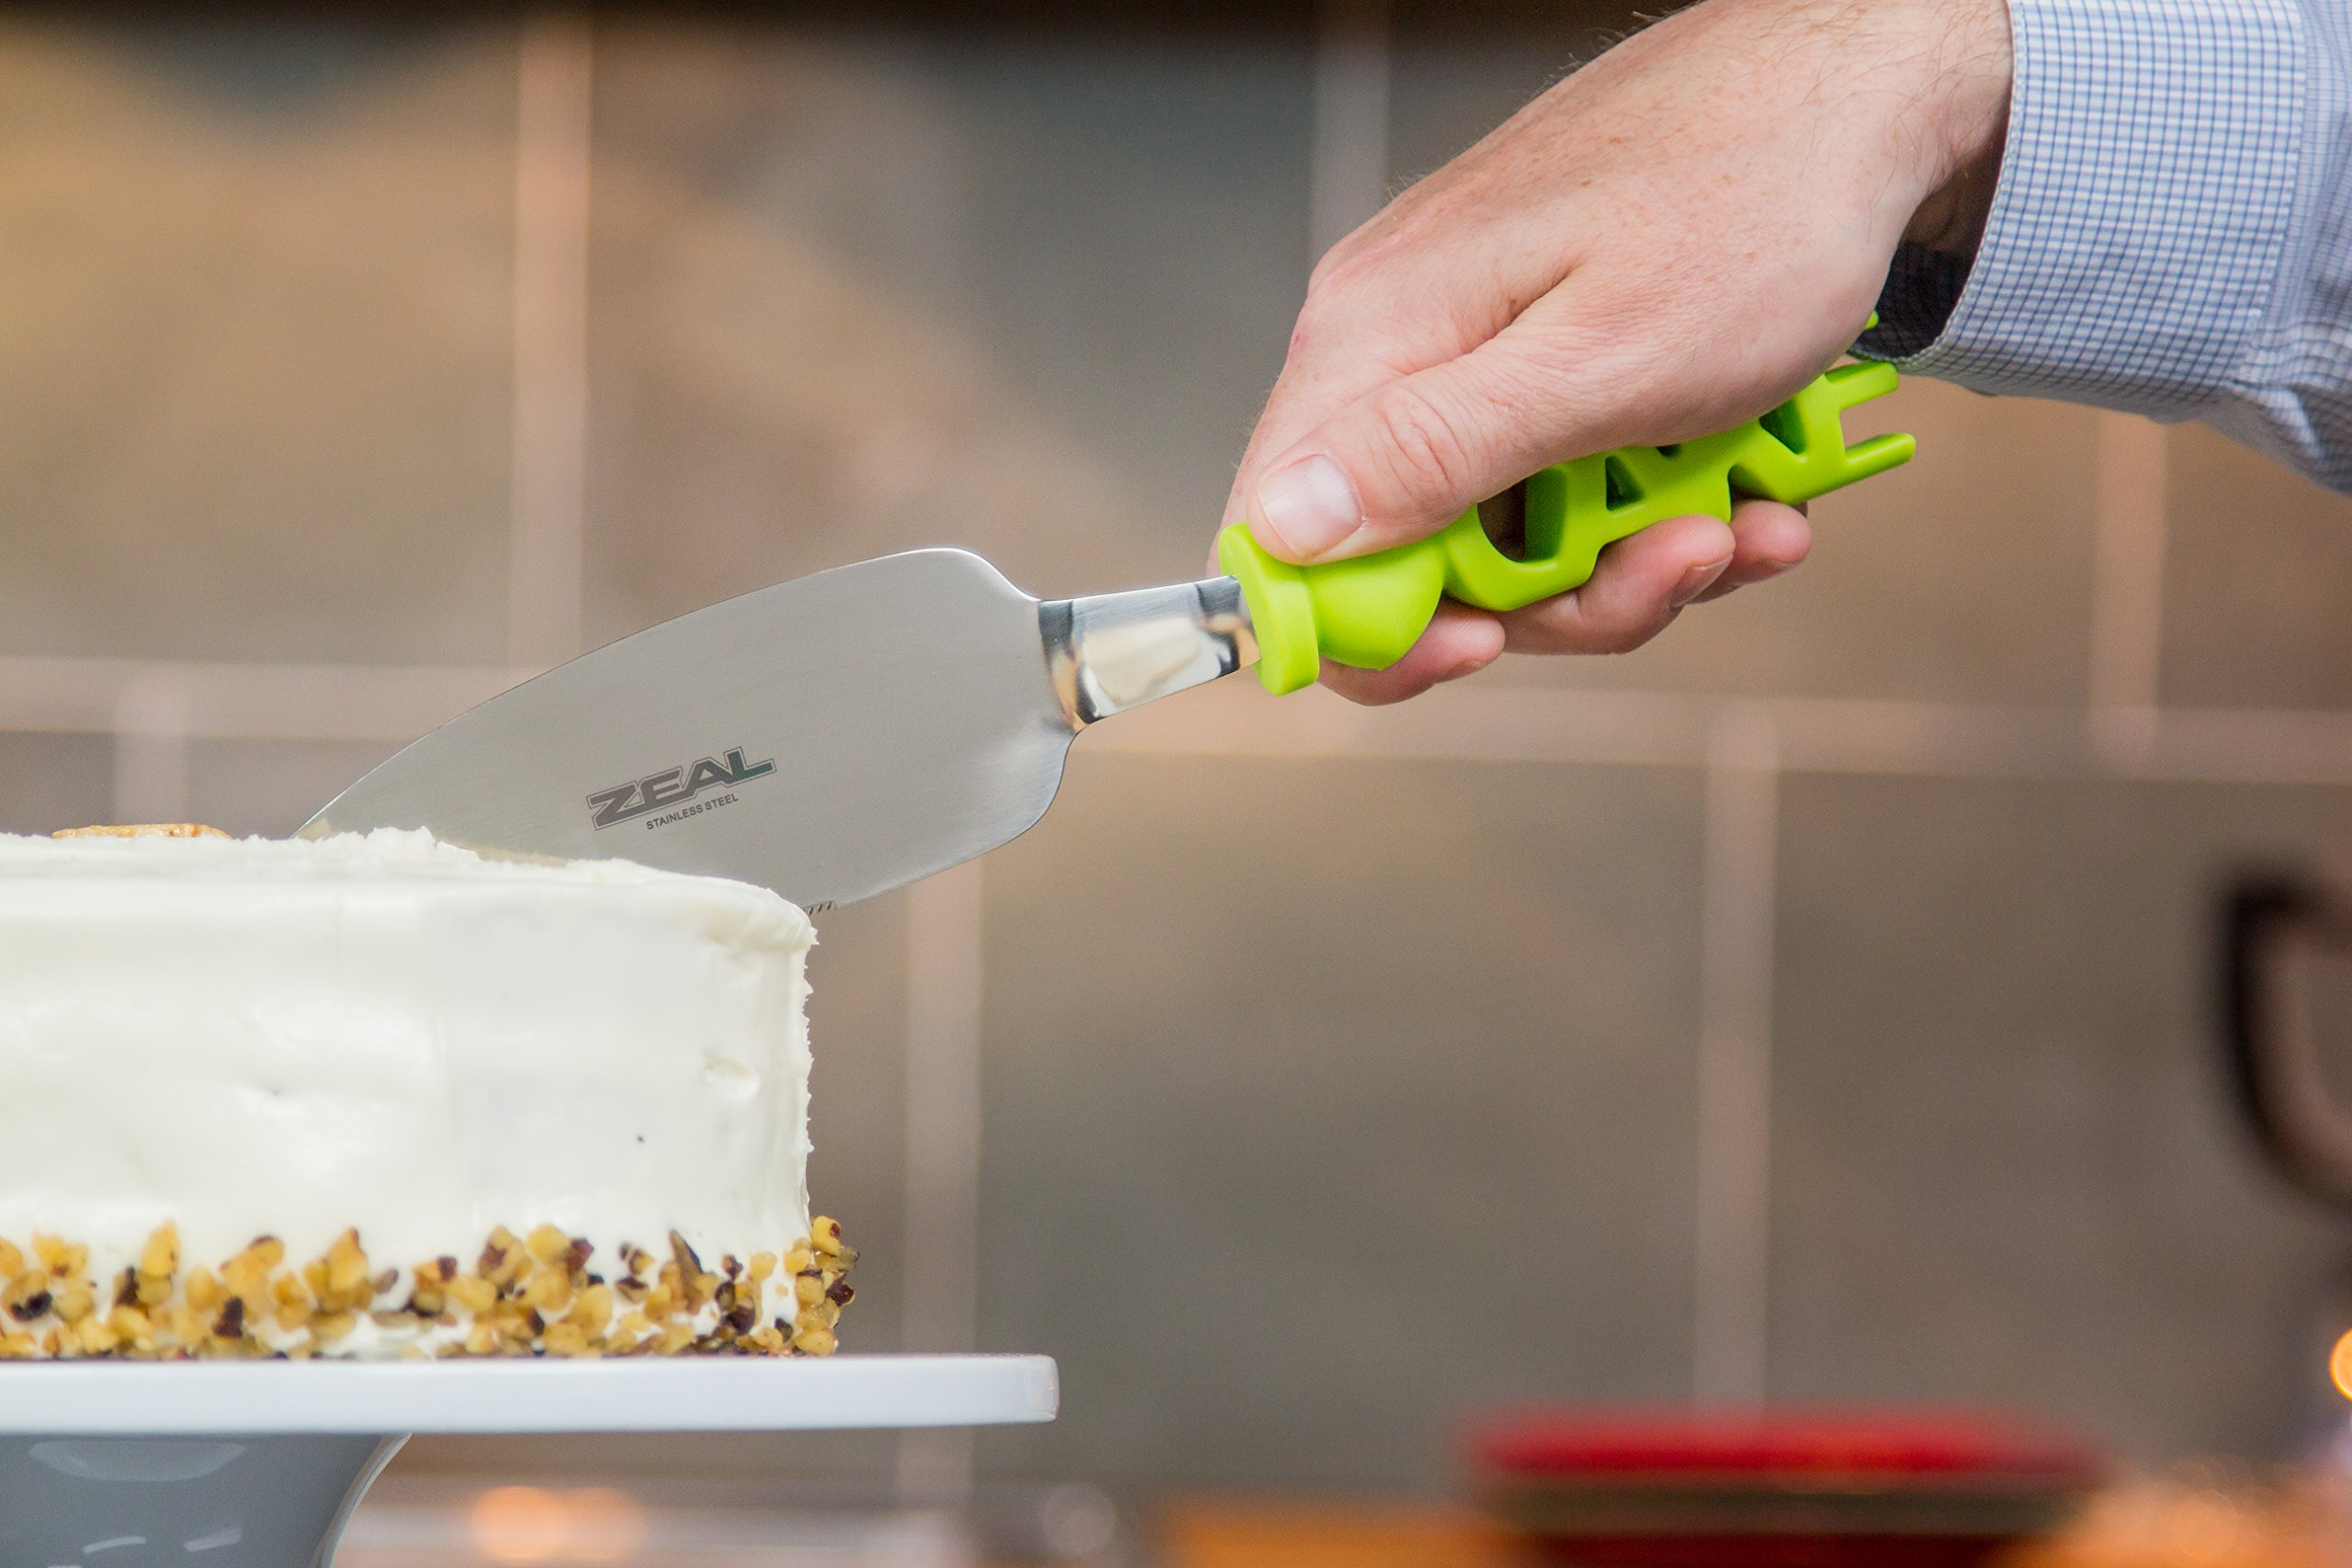 ZEAL Cake Slicer and Server with Cover - Serrated Cutter - I LOVE CAKE Design - For Cutting Cakes, Quiches, Pies - Green by Kitchen Innovations (Image #4)